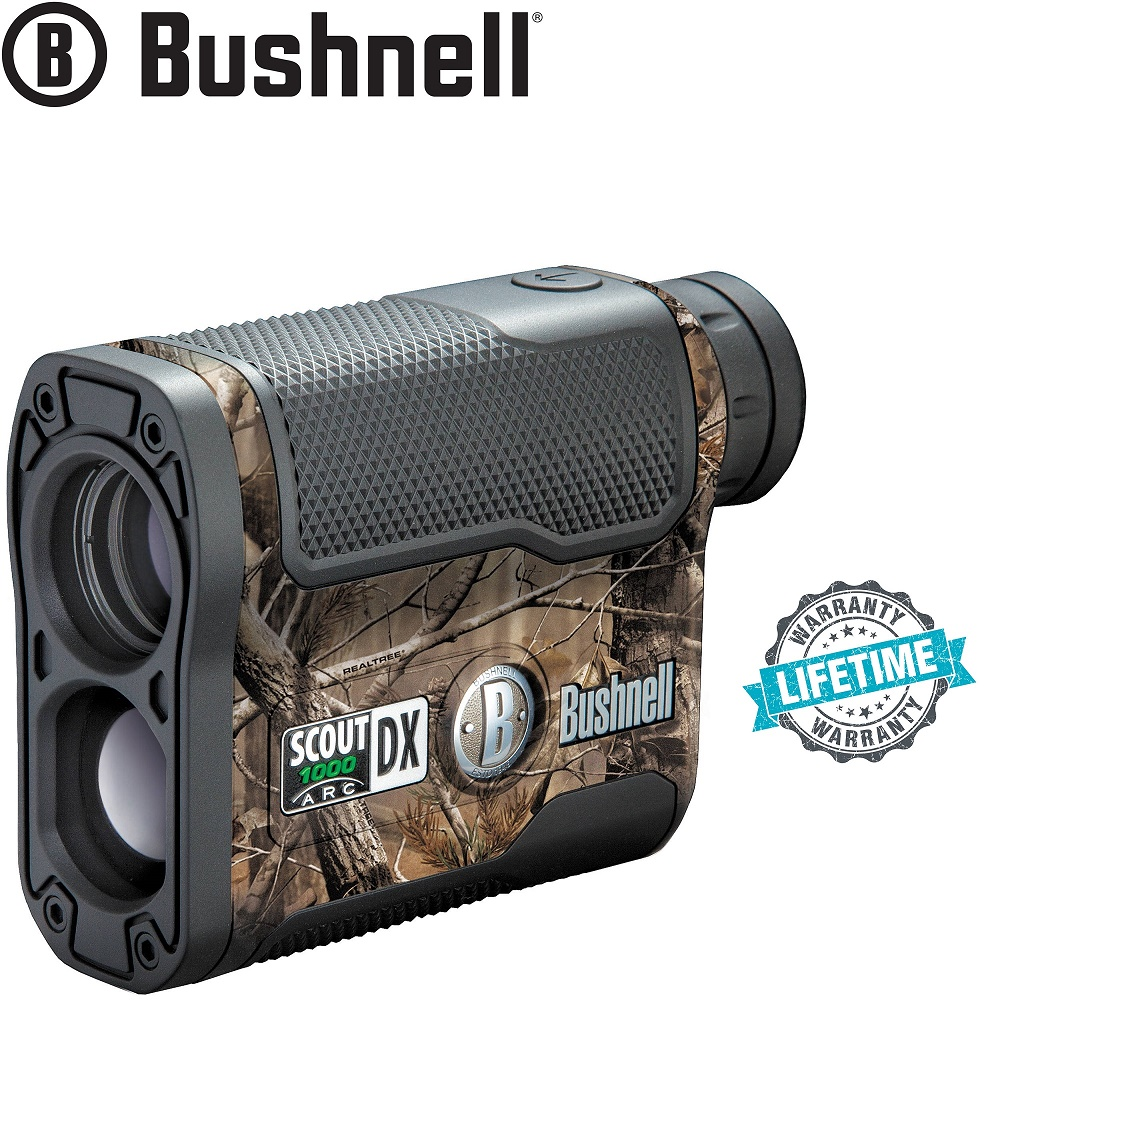 bushnell scout dx 1000 manual